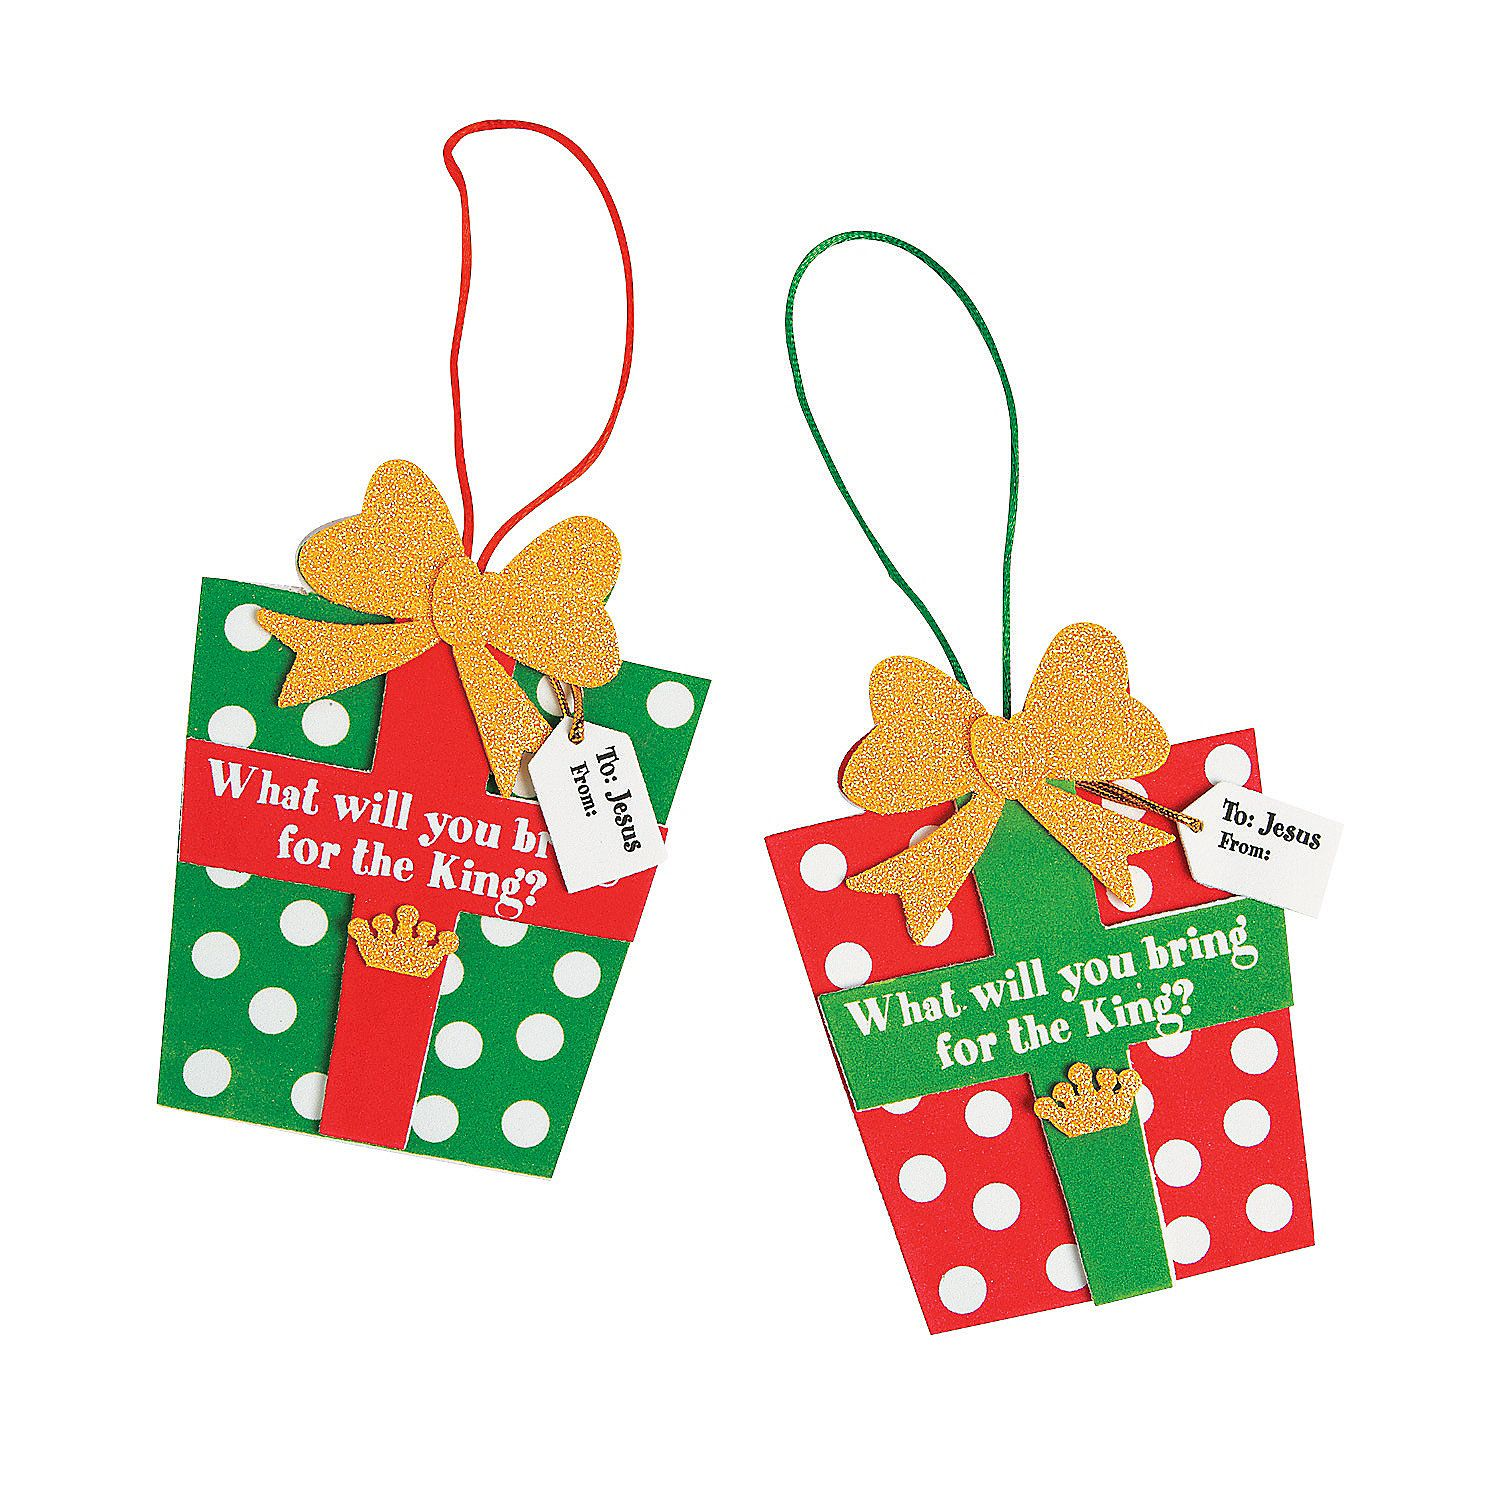 Gifts For the King Ornament Craft Kit - OrientalTrading.com